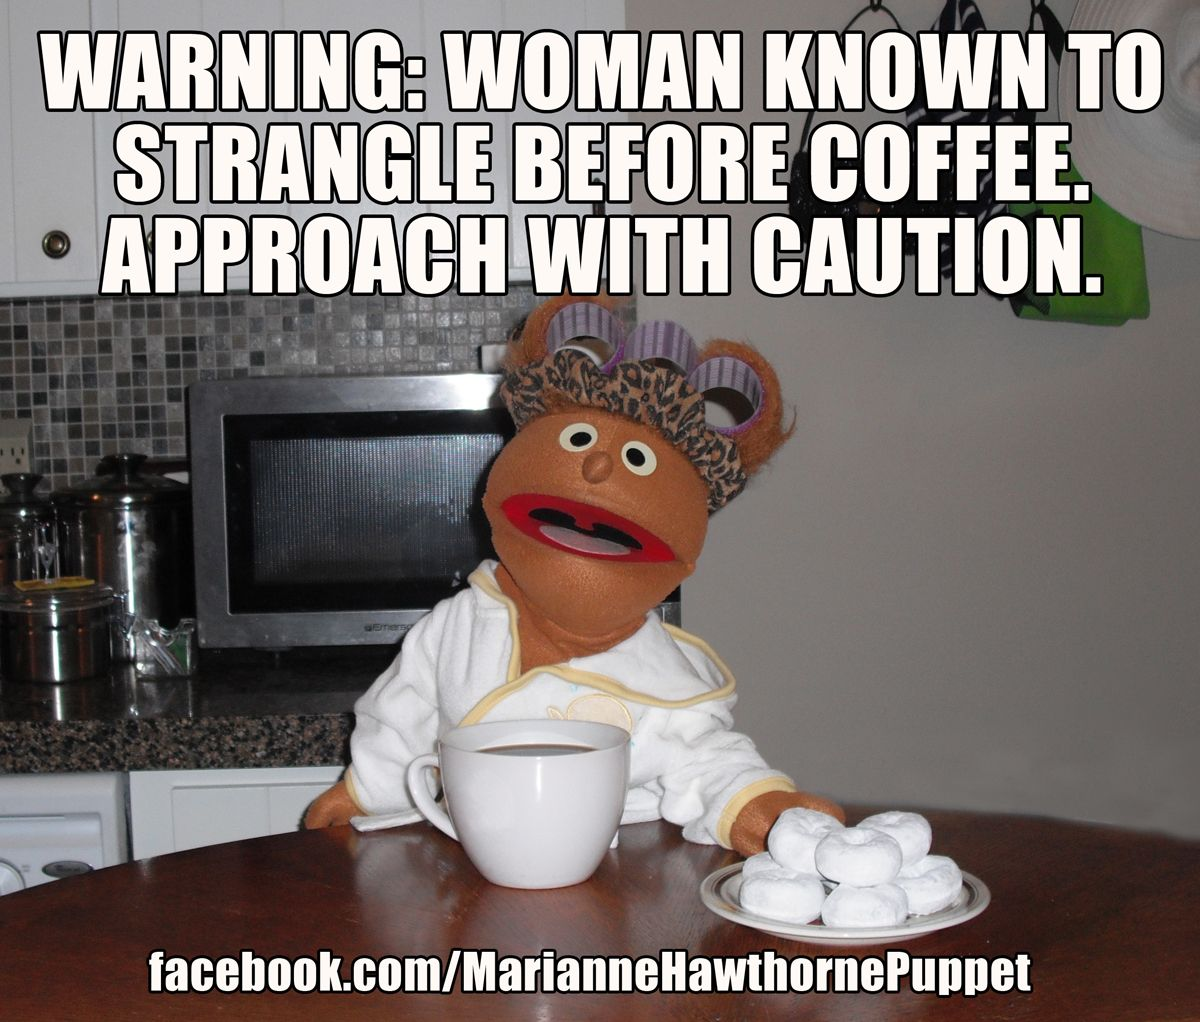 e445756db82ae89880b62928819517f9 warning woman known to strangle before coffee approach with